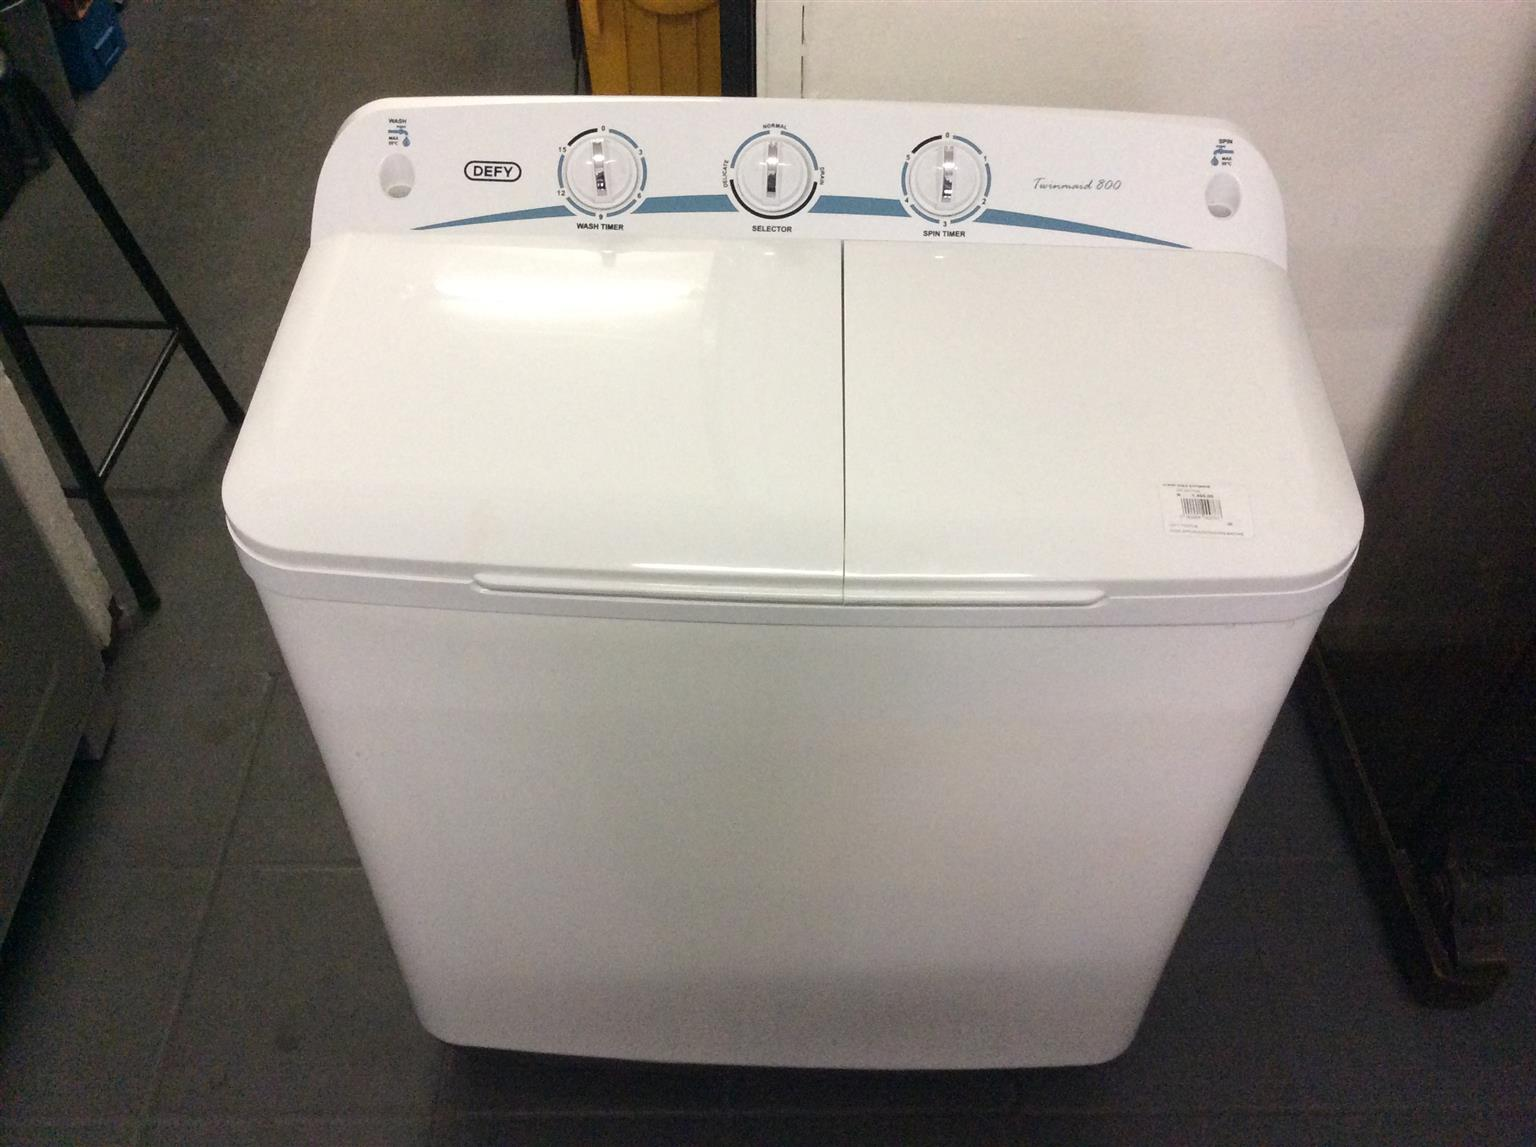 Defy Twintub washing machine